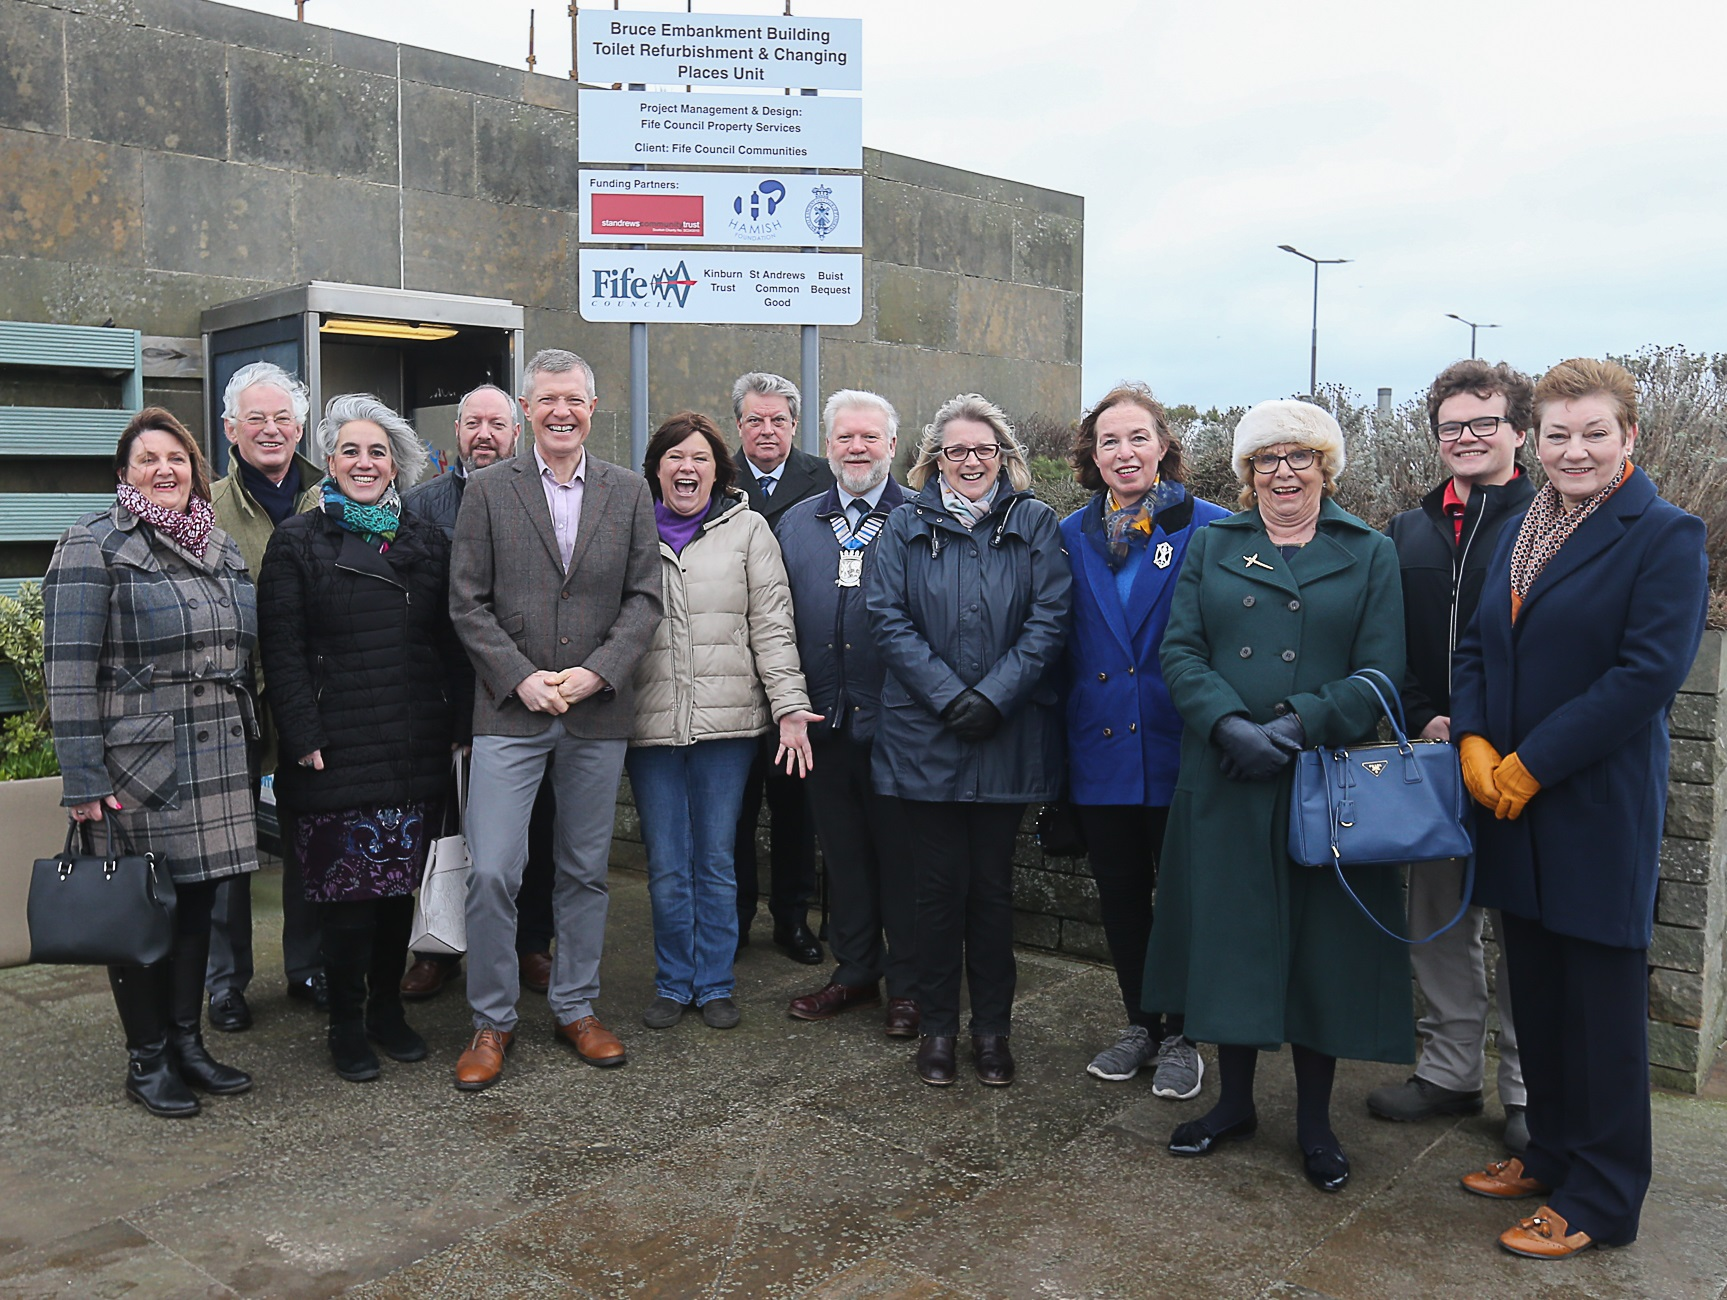 Photo L to R: Janice Laird, Fife Council, Robert Rae R&A, Daphne Bilouri-Grant, St Andrews Community Trust, Jeff Jacobs, Fife Council,  Willie Rennie, MSP Debbie McCallum, Tourism St Andrews, Stephen Toon, R&A, Callum MacLeod, Royal Burgh of St Andrews Community Council, Cllr Ann Verner, Cllr Jane-Ann Liston, Dorothea Morrison, St Andrews Partnership, Cllr Nominic Nolan, Irene Morrison, St Andrews Community Trust